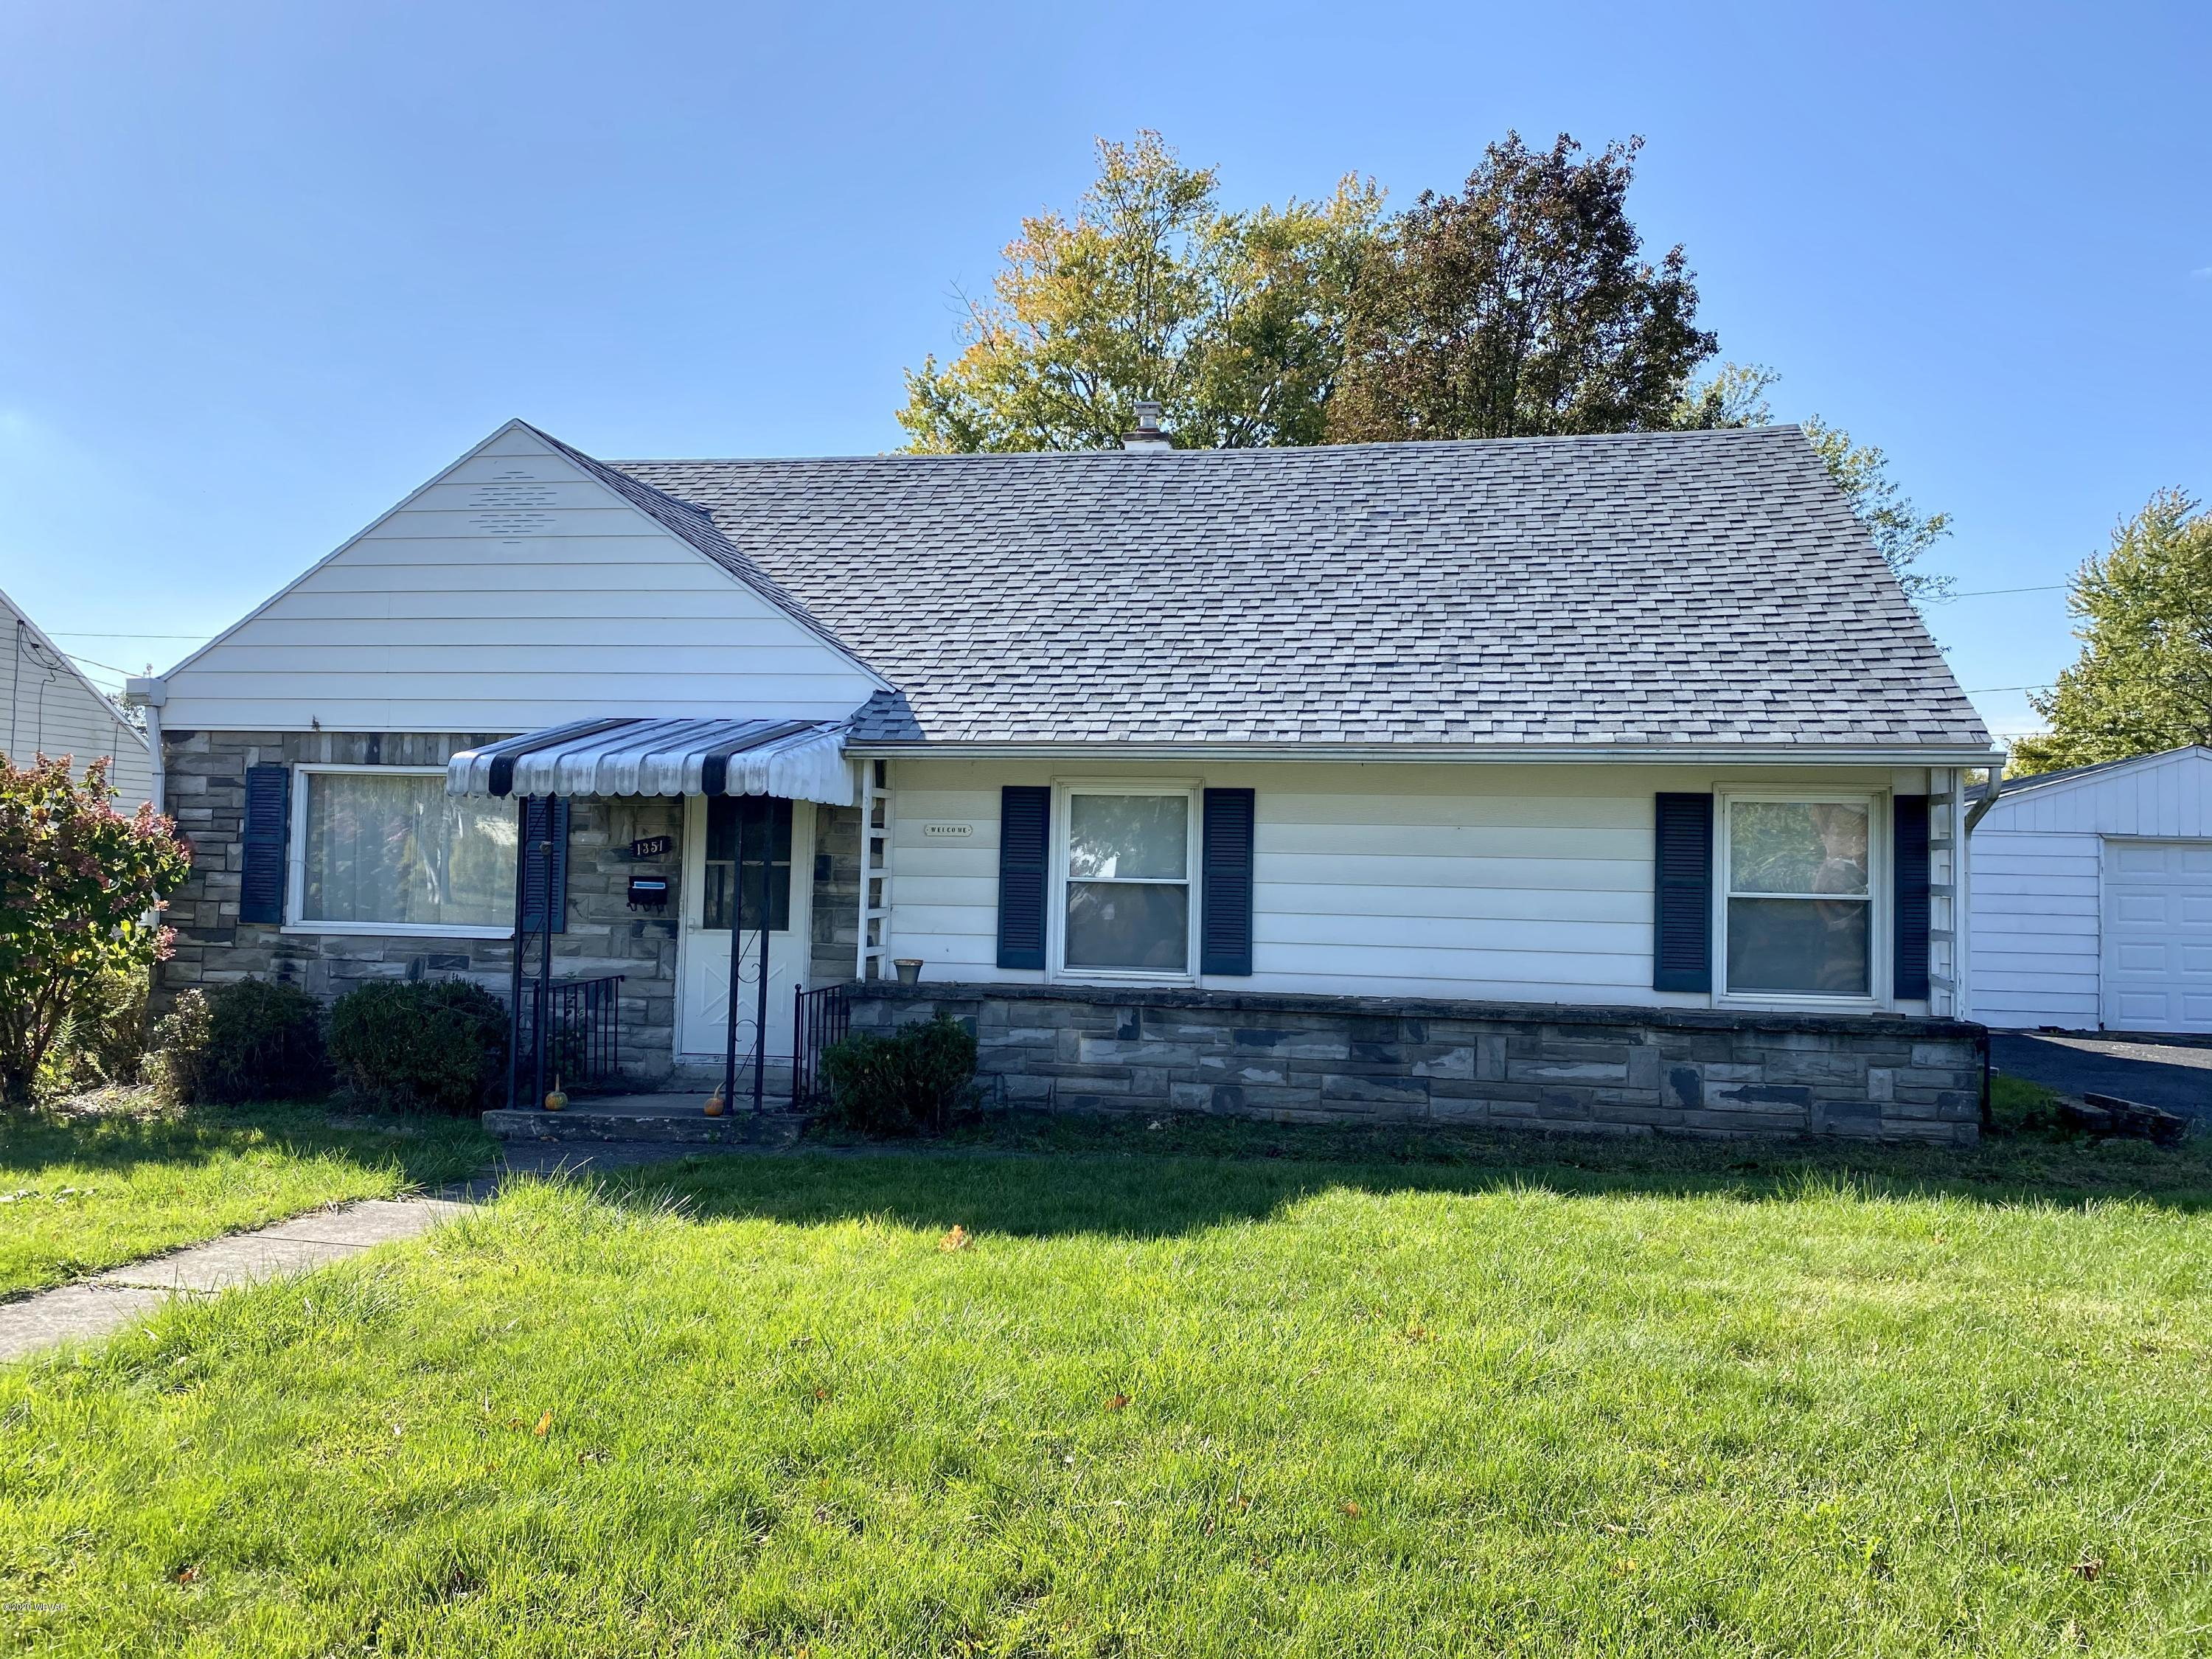 1351 PENNSYLVANIA AVENUE, Williamsport, PA 17701, 3 Bedrooms Bedrooms, ,1 BathroomBathrooms,Residential,For sale,PENNSYLVANIA,WB-91350